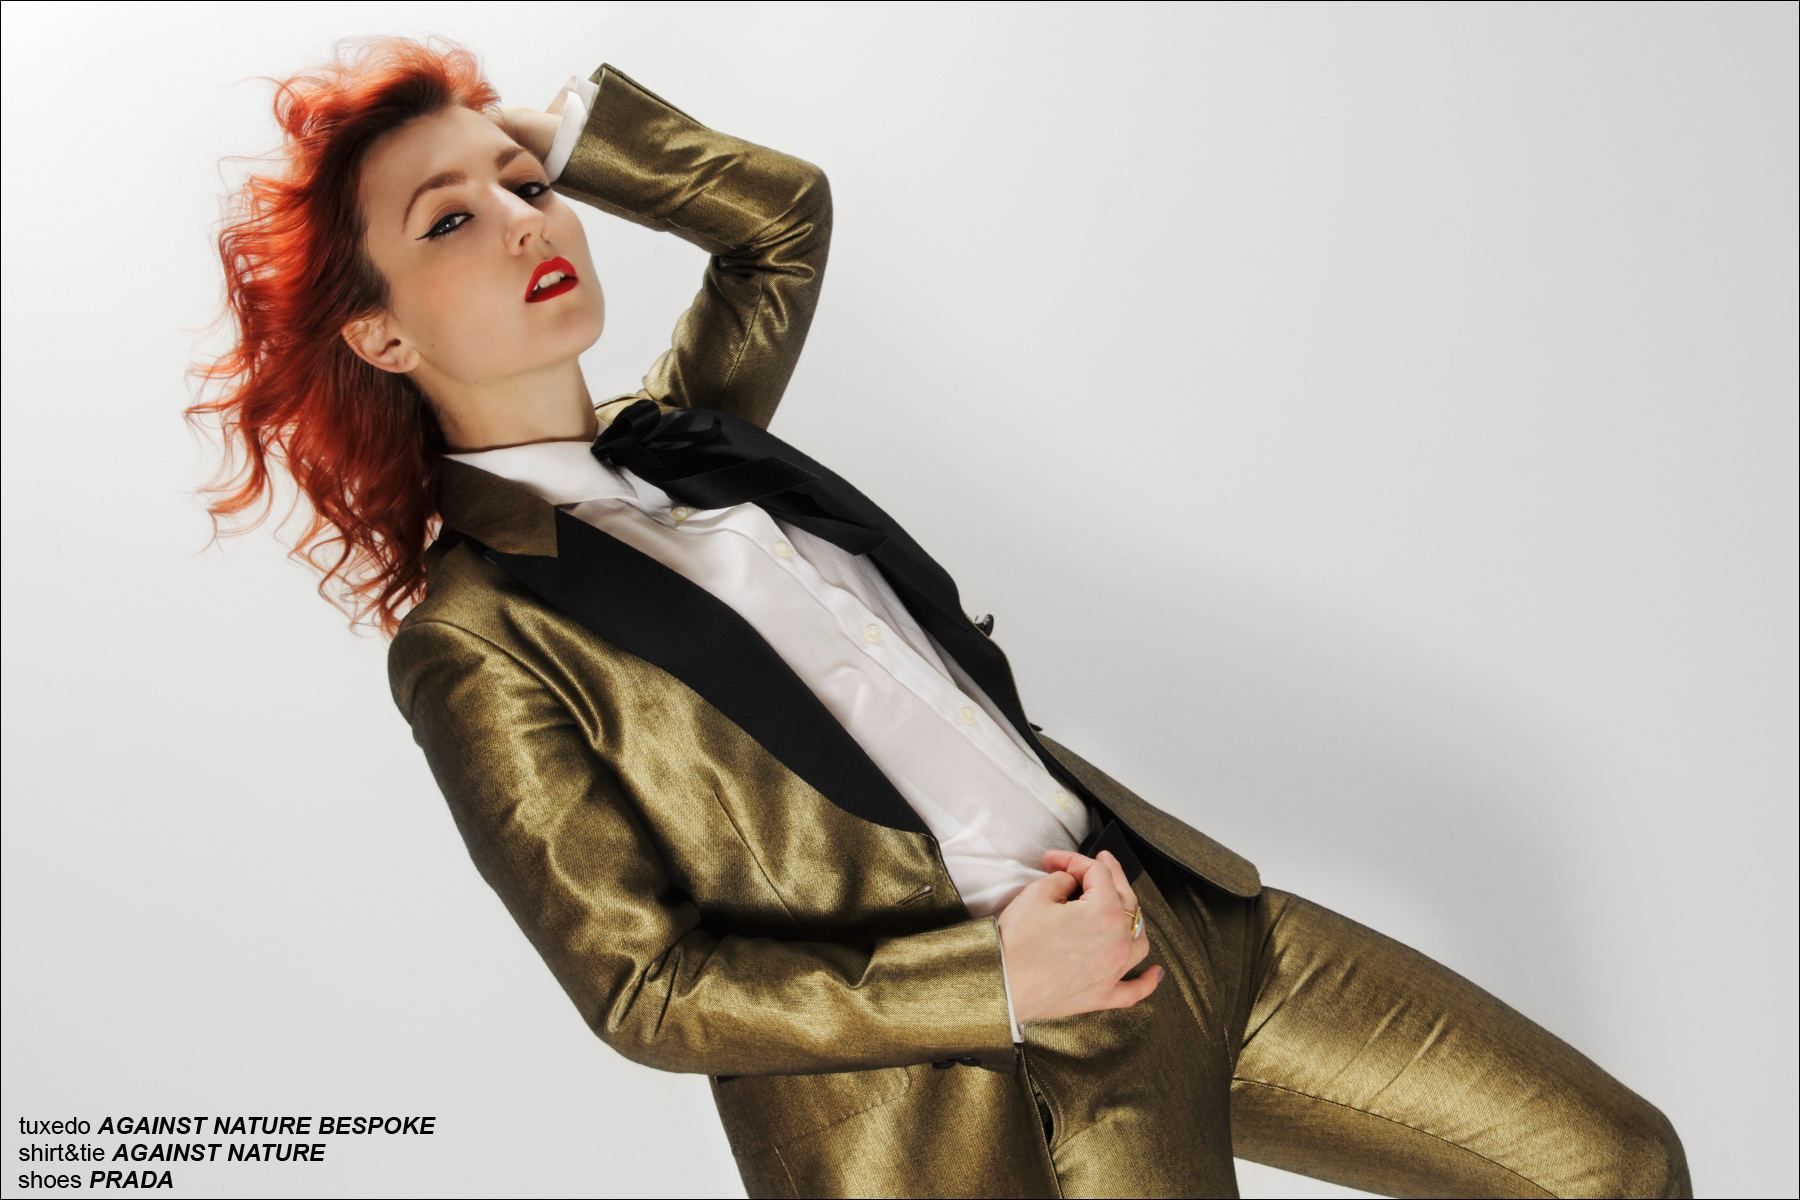 Doyle+Mueser designer Amber Doyle photographed in a gold teddy boy suit by Alexander Thompson for Ponyboy Magazine.